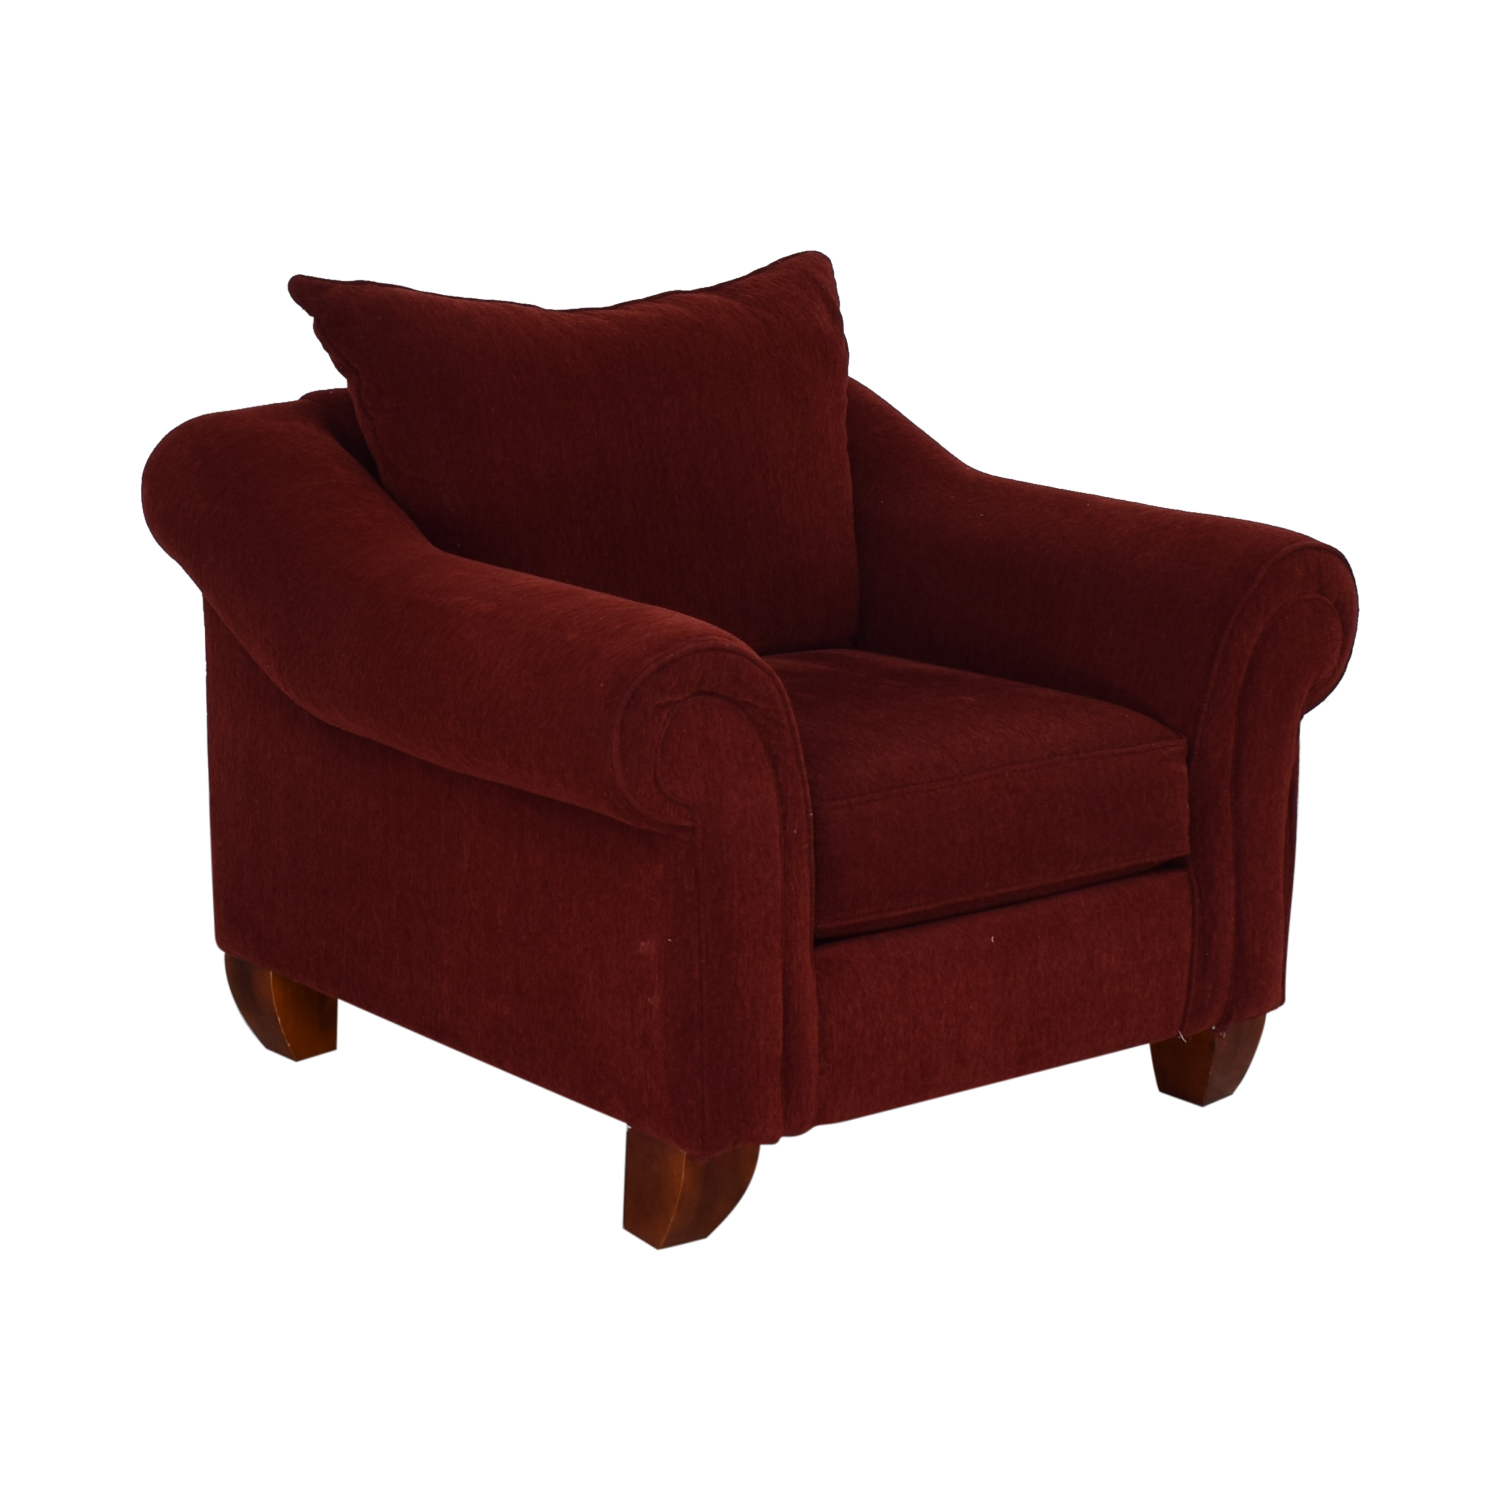 Raymour & Flanigan Raymour & Flanigan Red Arm Accent Chair Chairs